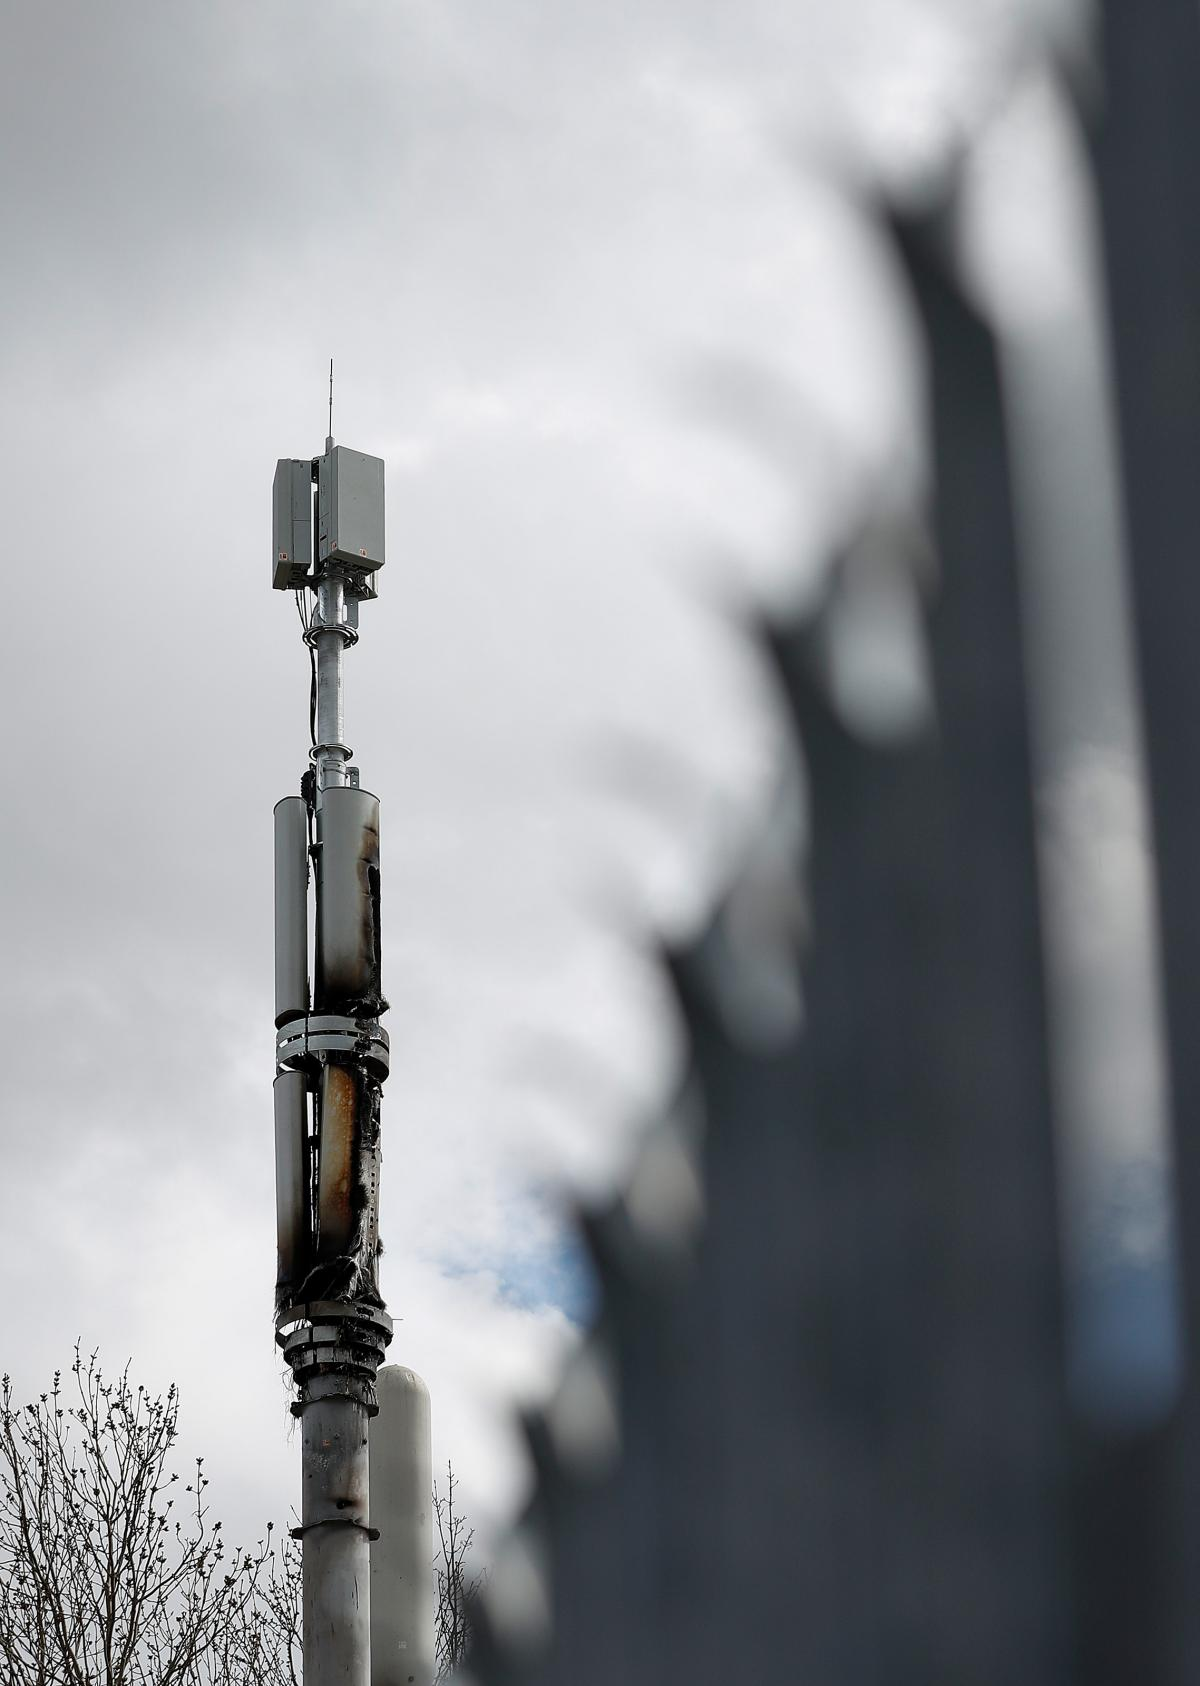 A fire-damaged telecom tower stands in Birmingham, England, in April. Authorities have cited conspiracy theories about 5G and the coronavirus as a possible motivation for a rash of such fires in the U.K.